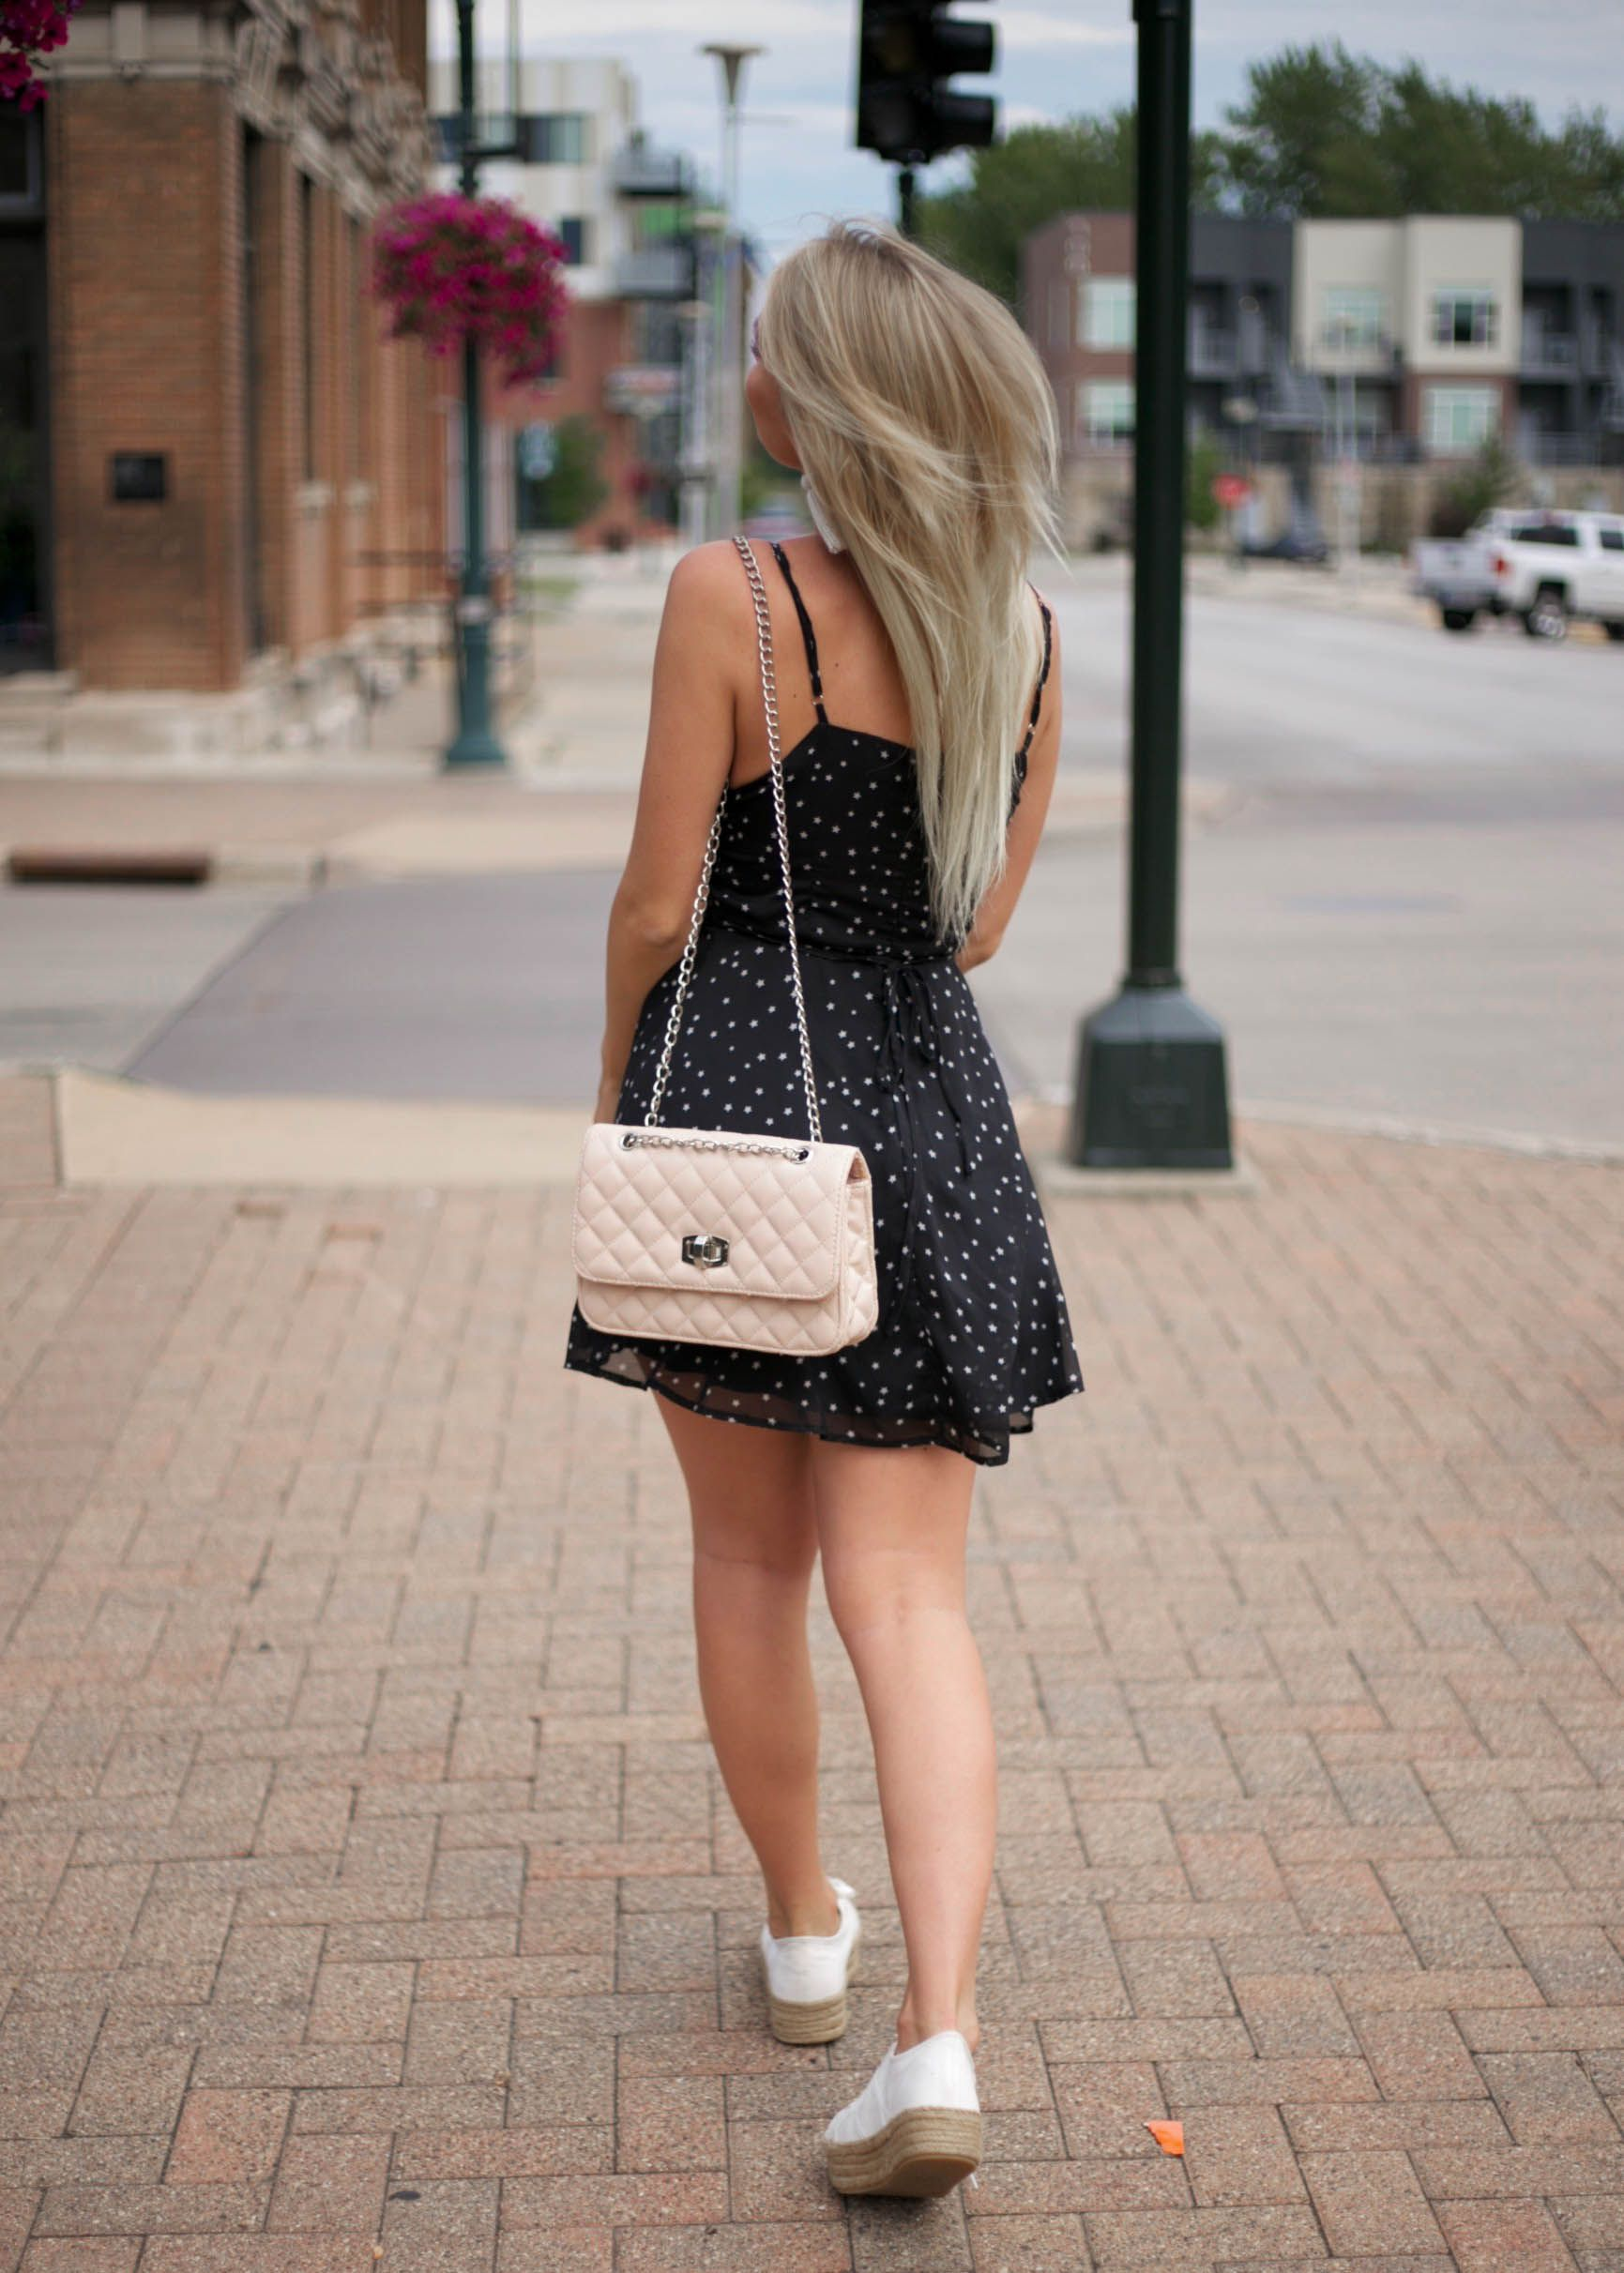 Black And White Mini Stars Dress With Platform White Tennis Shoes And Pink Purse Instagram Natalie Siems Fashion Blog Fashion Star Dress Fashion Pictures [ 2423 x 1731 Pixel ]